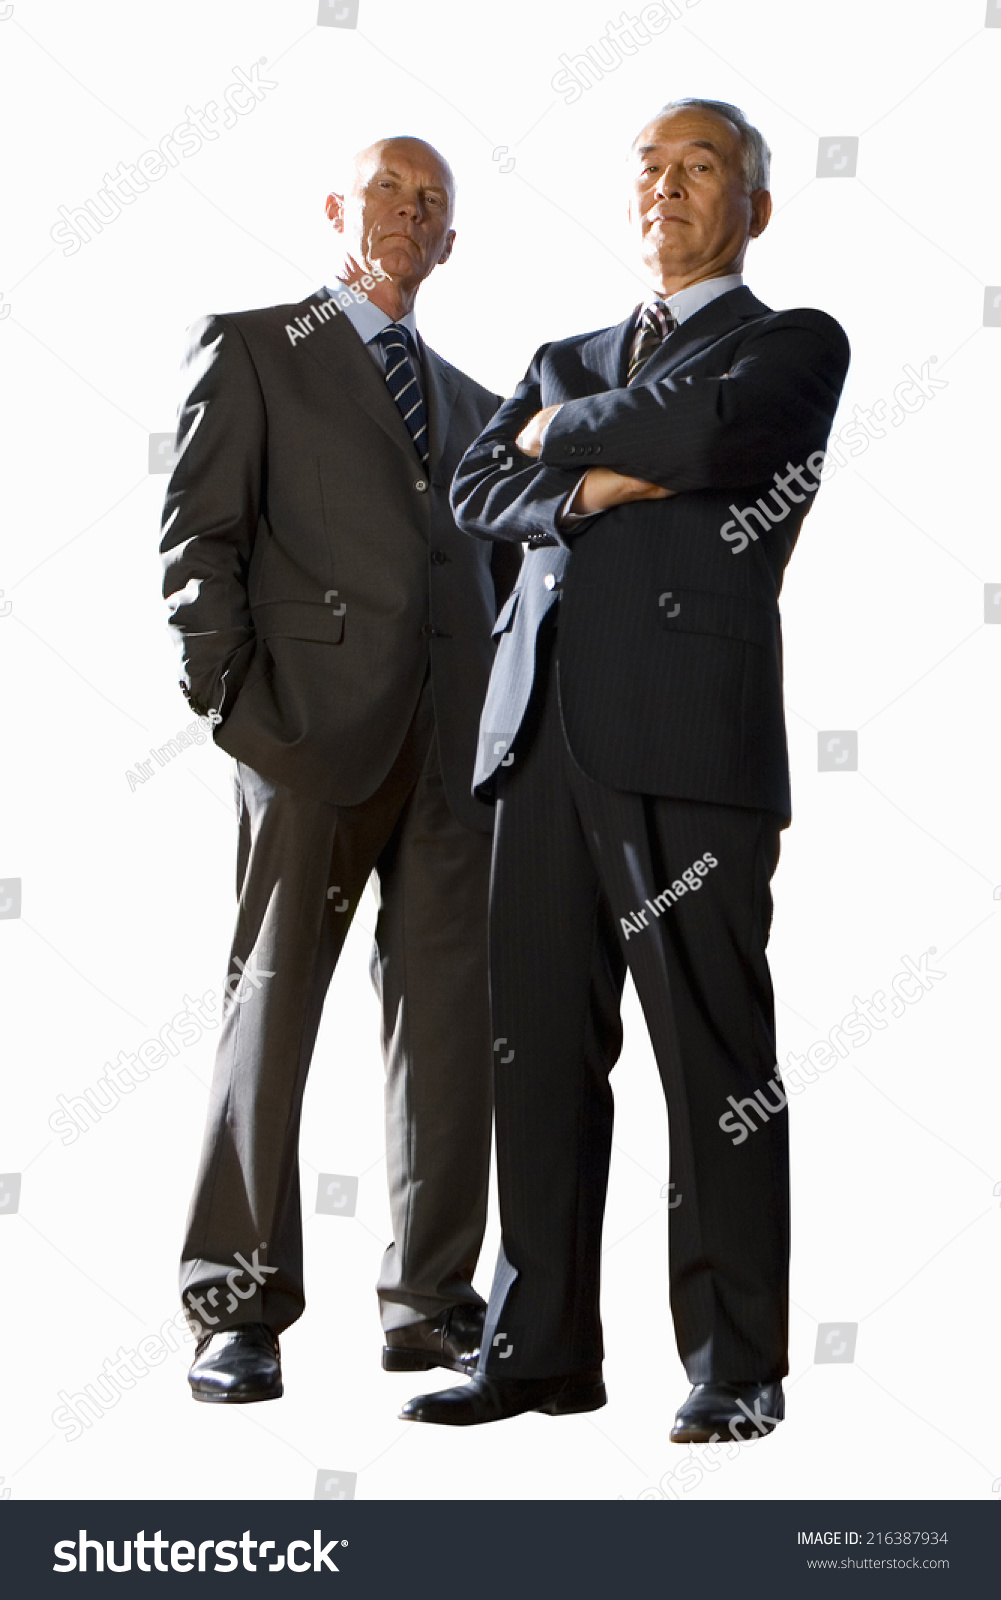 Two Businessmen Portrait Low Angle View Stock Photo (Edit Now) 216387934